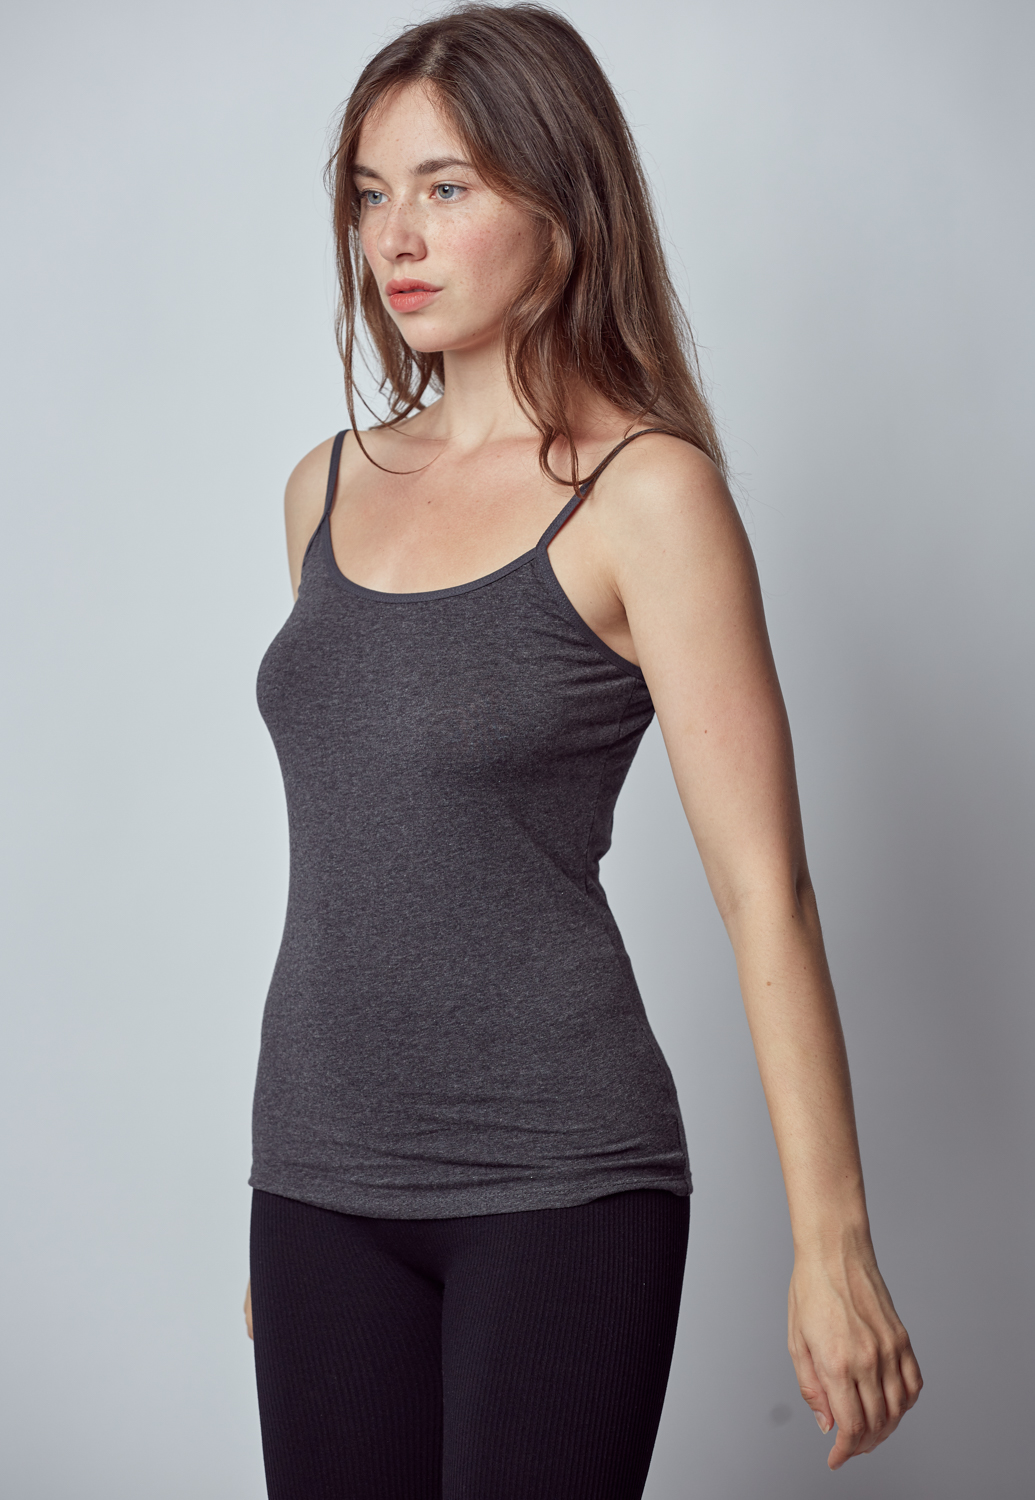 Basic Stretch Camisole Tank Top